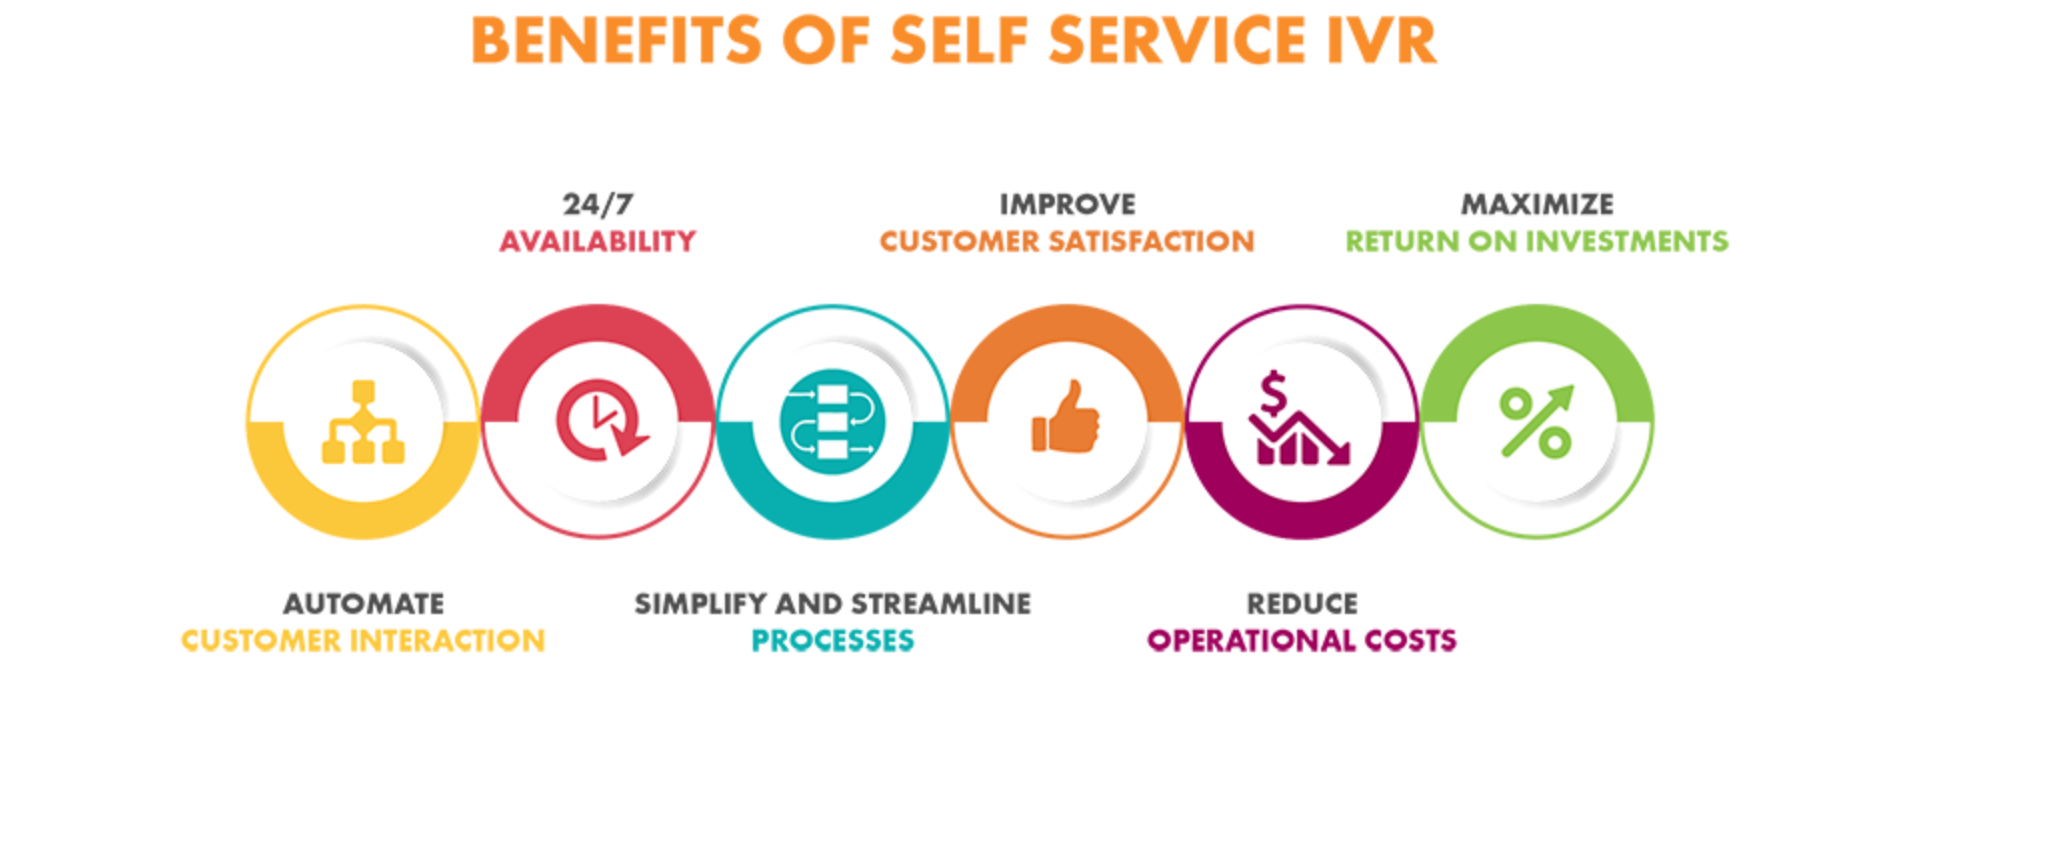 benefits of self-service IVR